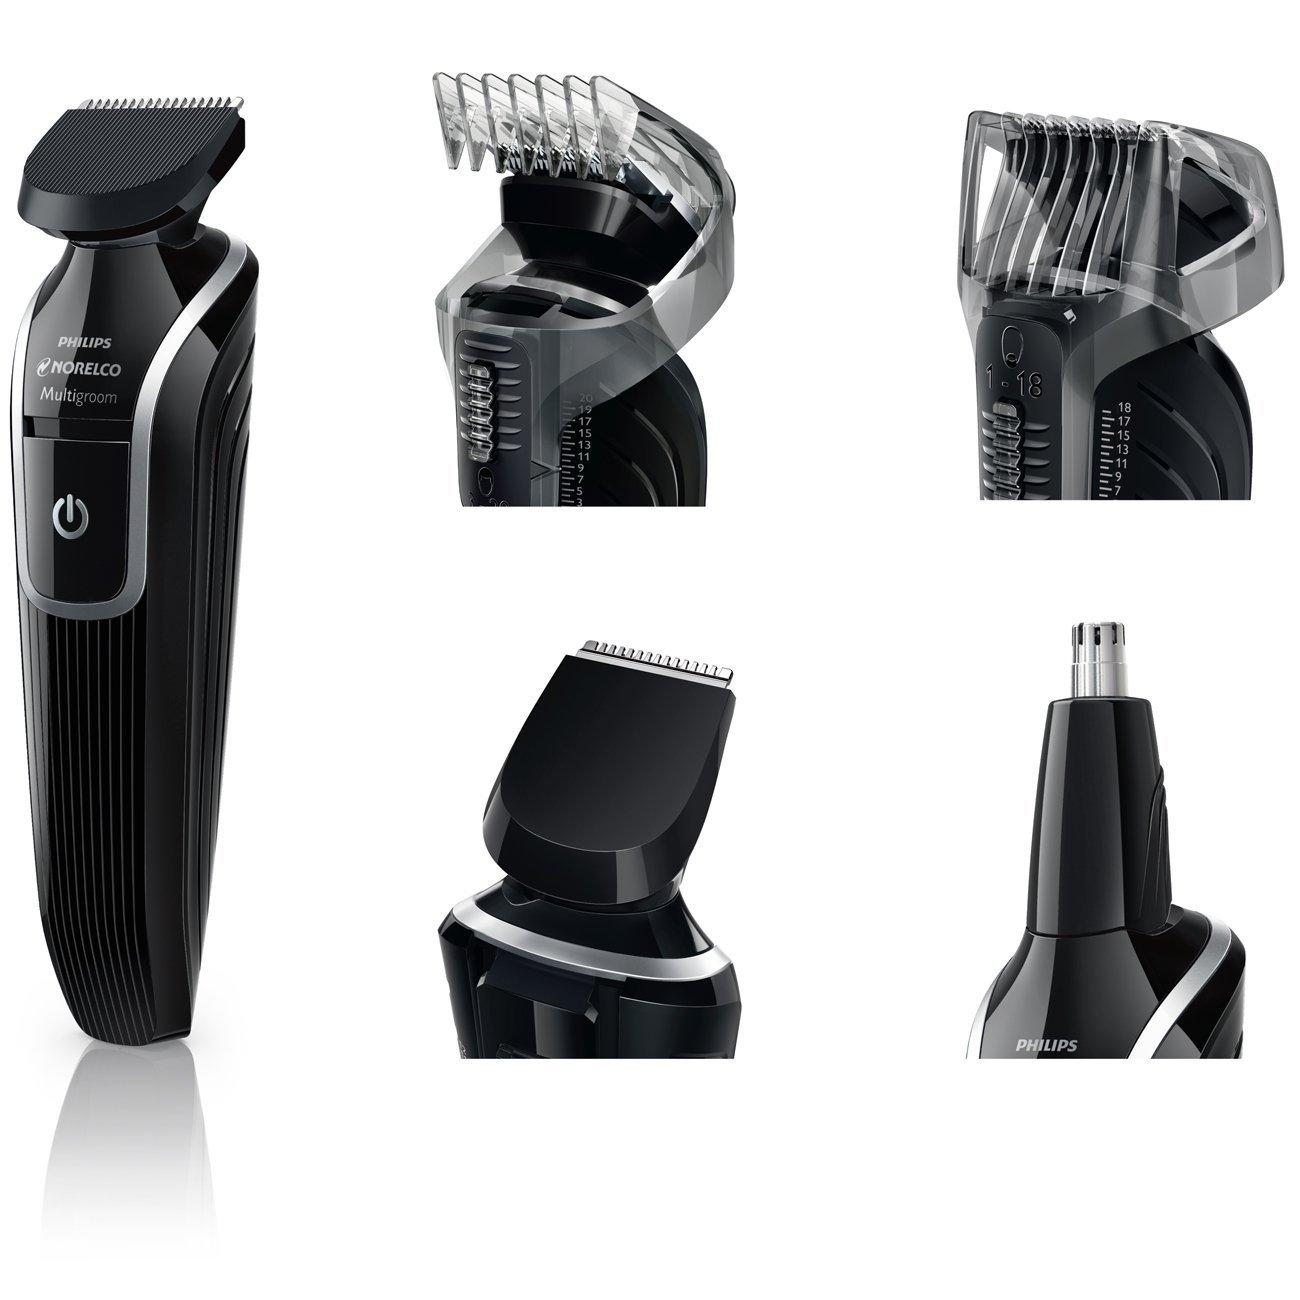 philips norelco multigroom 3100 groomer facial groomer razor shaver best mens groomer. Black Bedroom Furniture Sets. Home Design Ideas